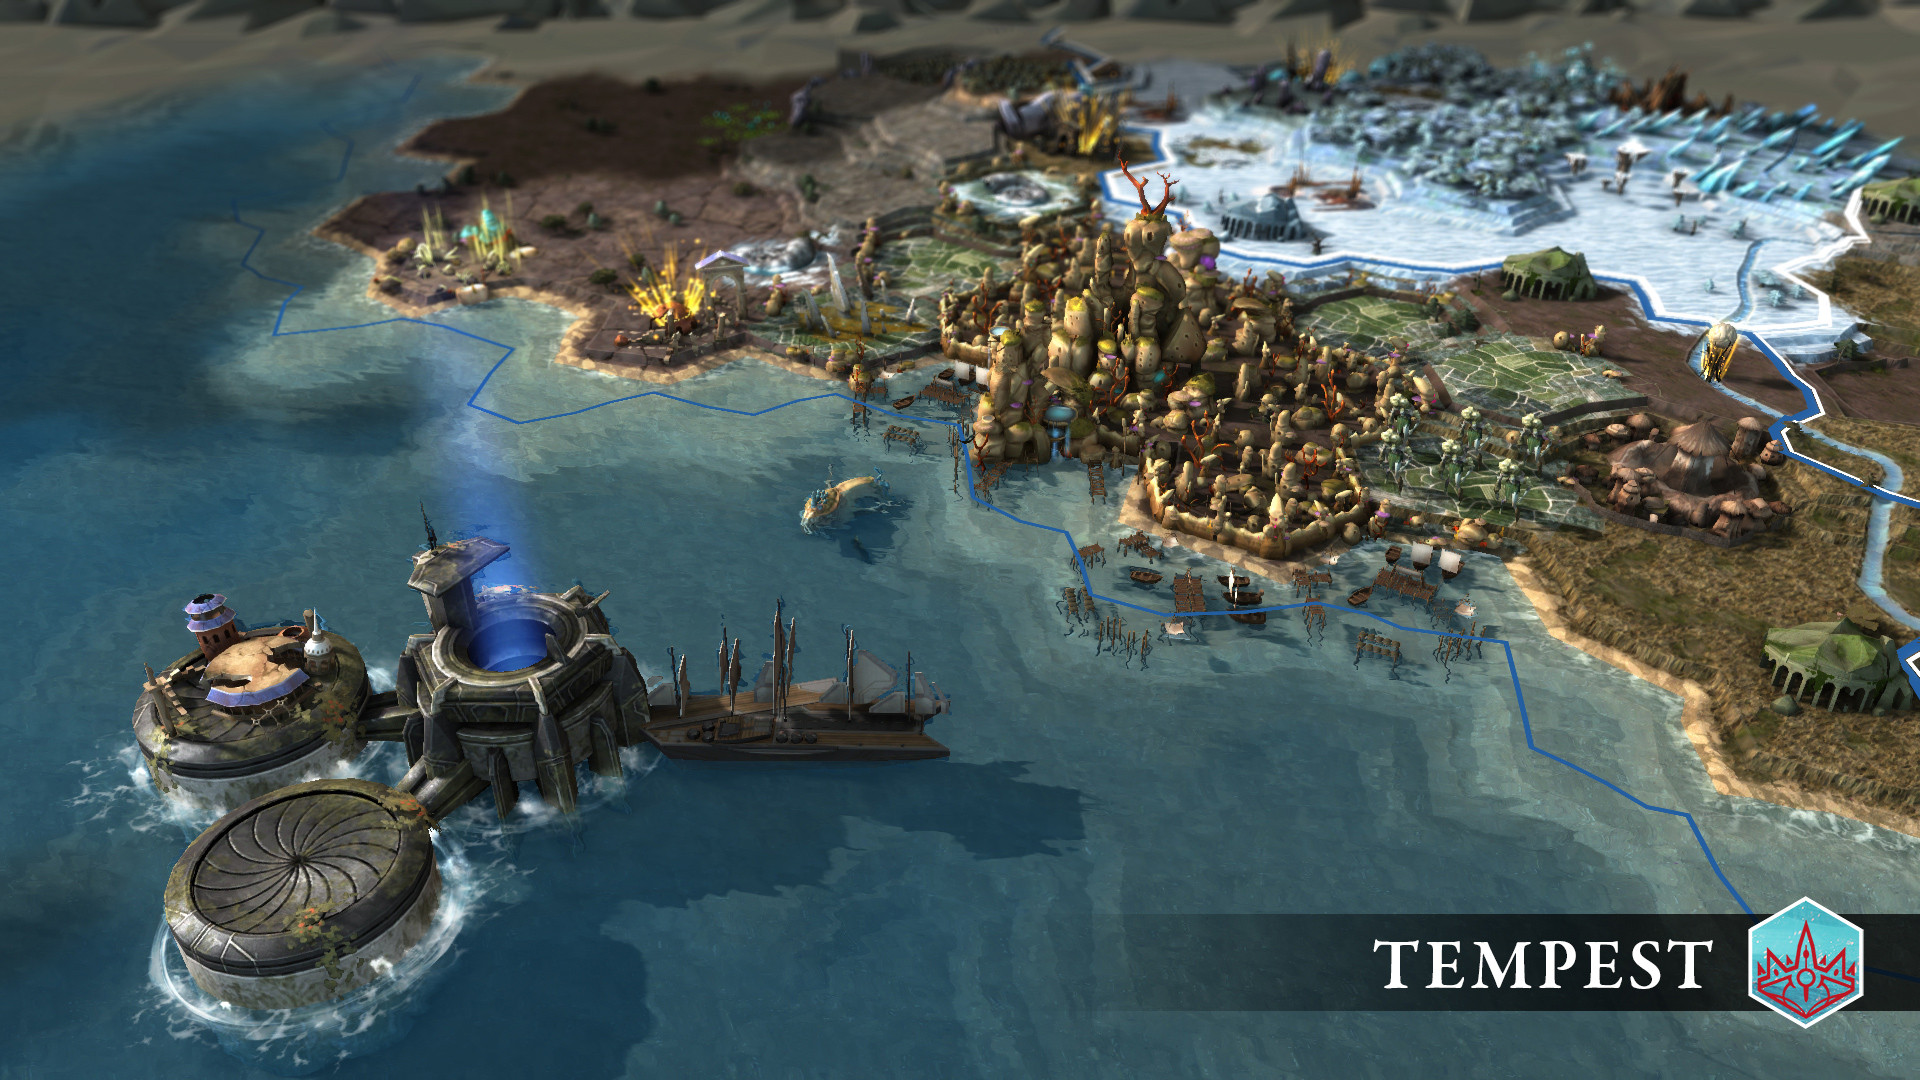 el-tempest-morgawr-city.jpg - Endless Legend